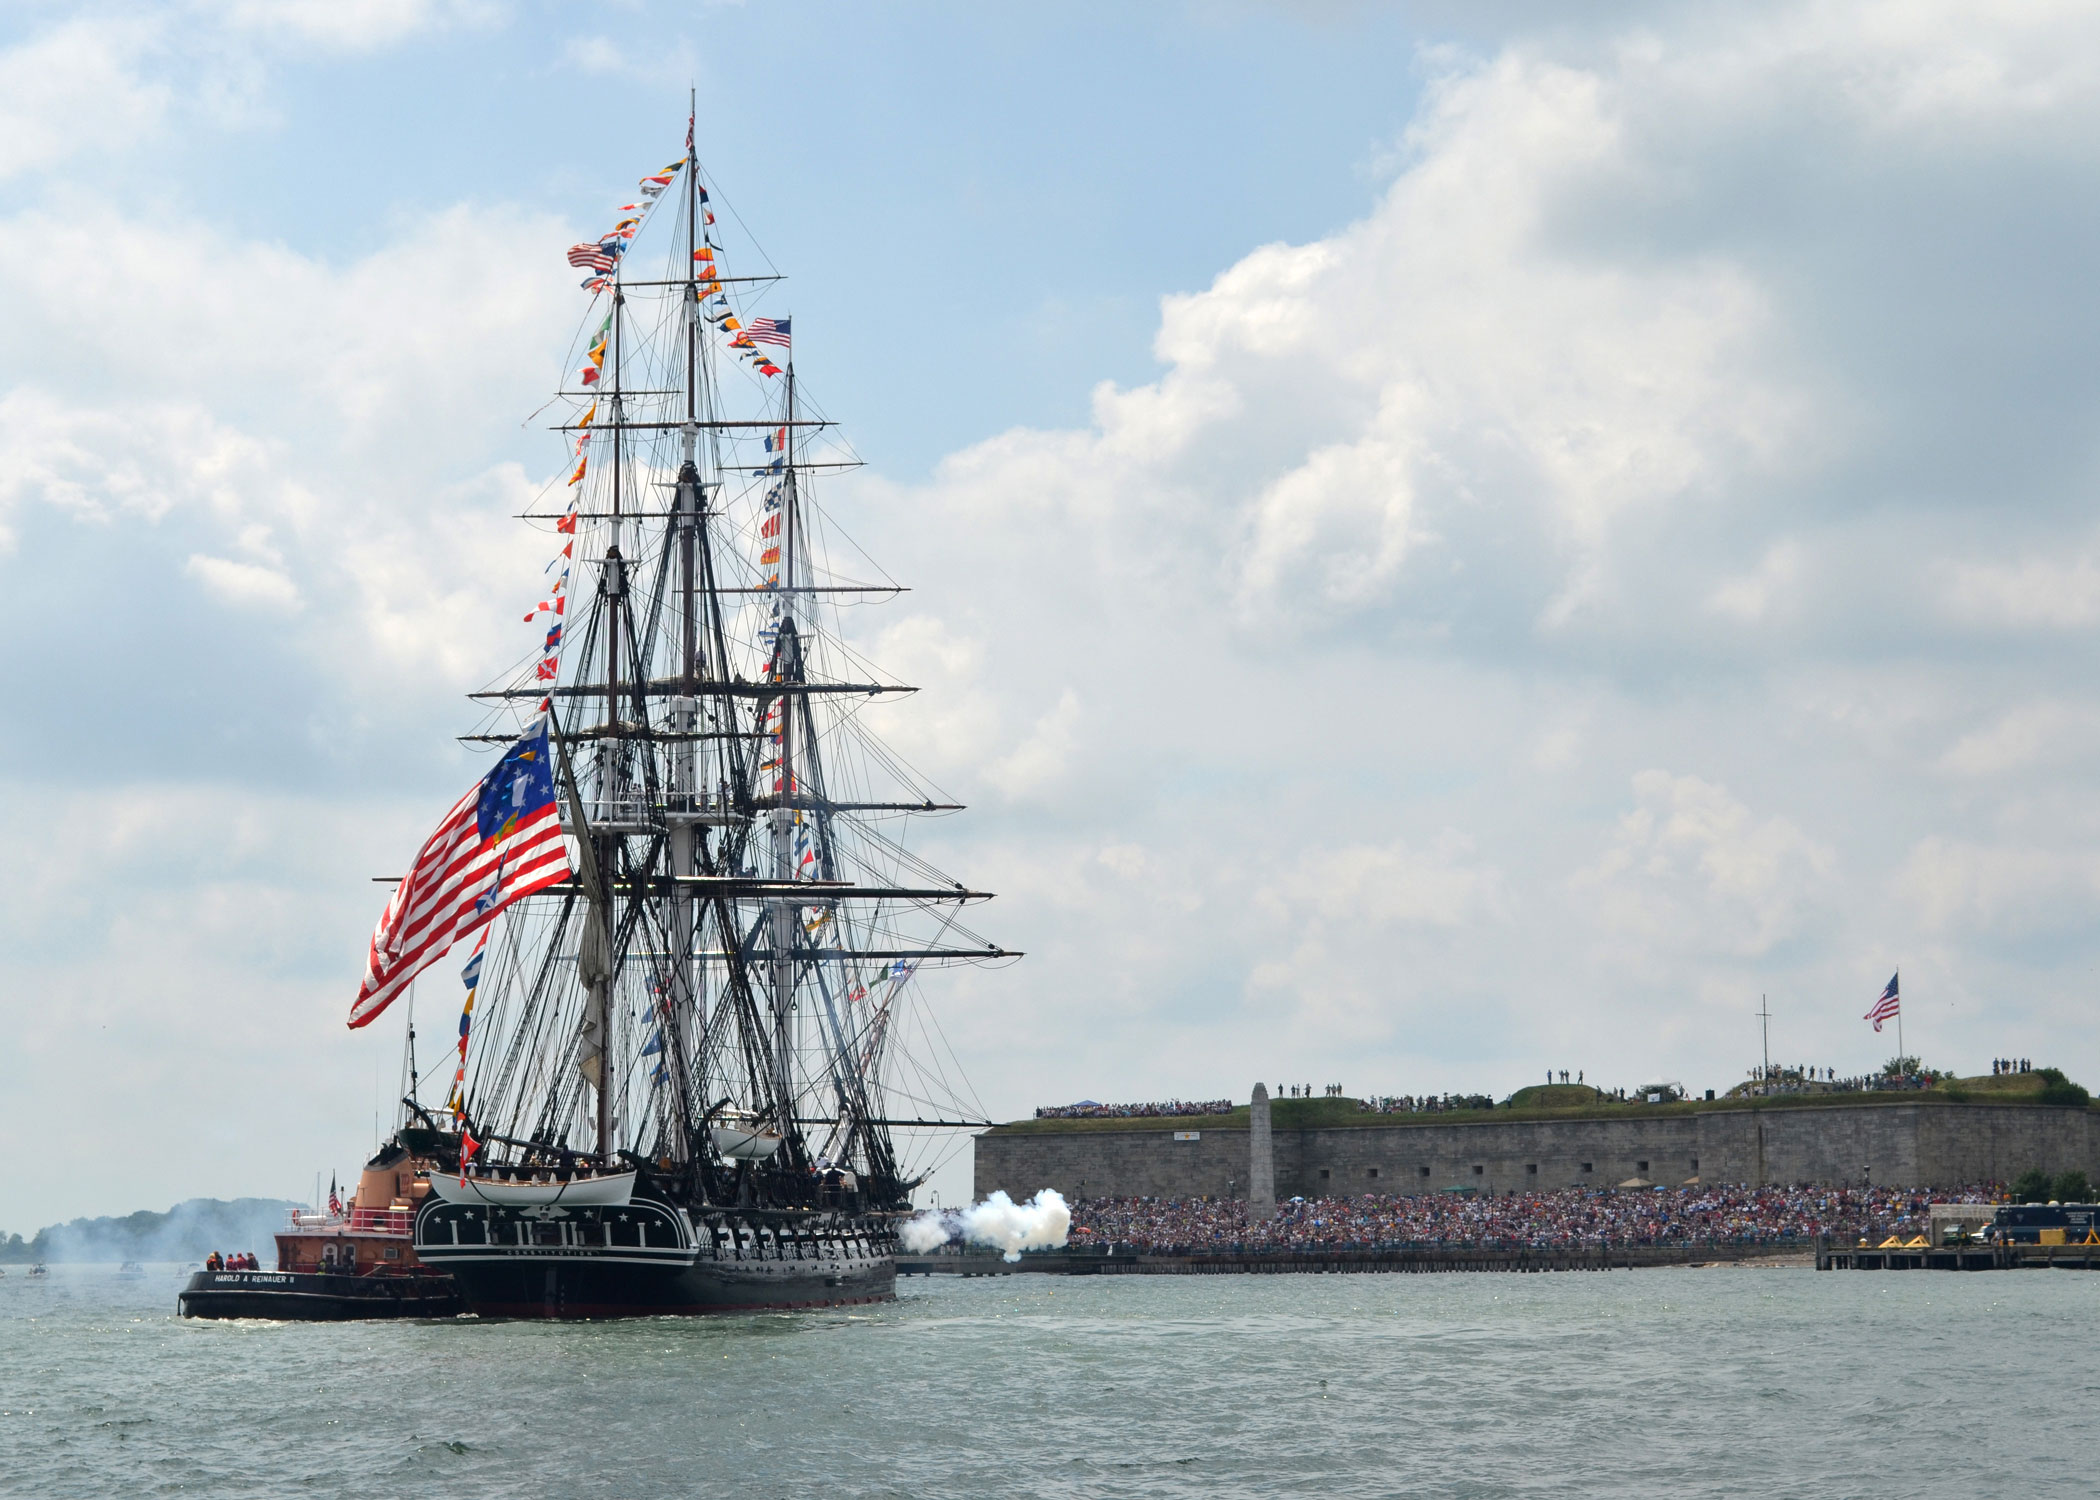 USS Constitution fires a 21-gun salute toward Fort Independence on Castle Island during the ship's July Fourth underway as part of an event for Boston Navy Week.